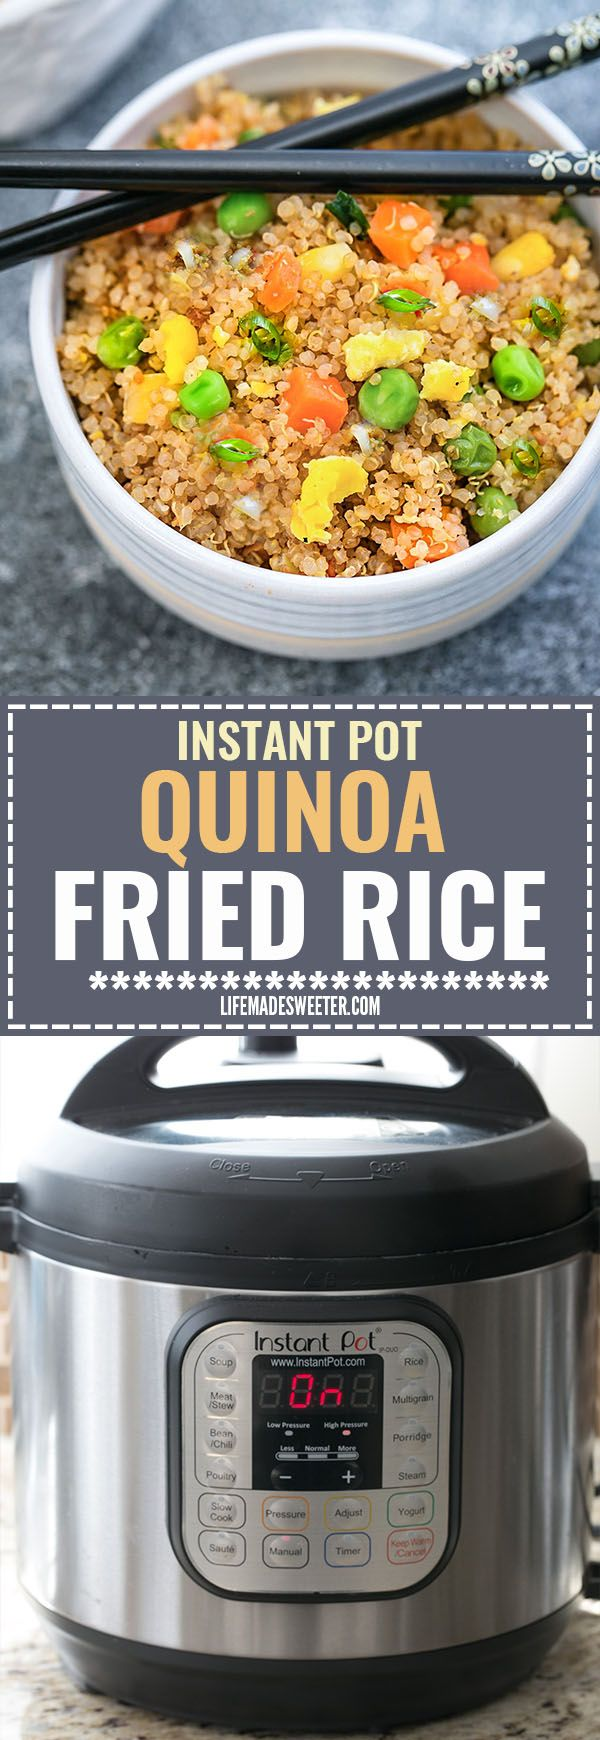 Instant Pot Quinoa Fried Rice makes a simple and healthy alternative to traditional fried rice. Full of protein and vegetables and just perfect for busy weeknights. Best of all, instructions included to make it in your Instant Pot pressure cooker or on the stove! -   19 best quinoa recipes ideas